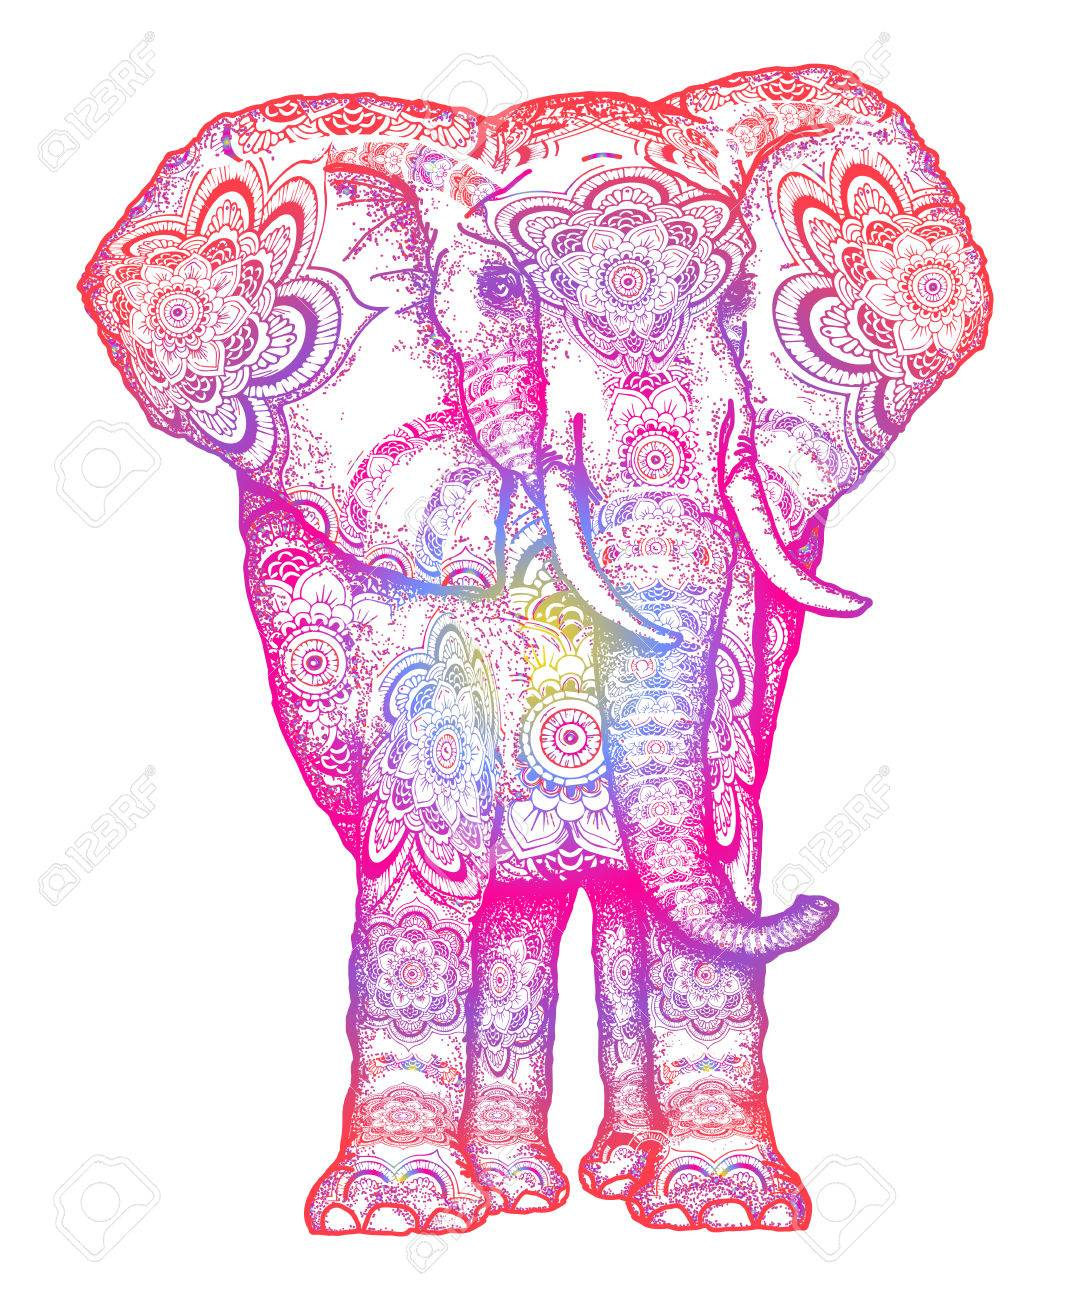 - Elephant Tattoo. Decorative Colorful Elephant Front View With